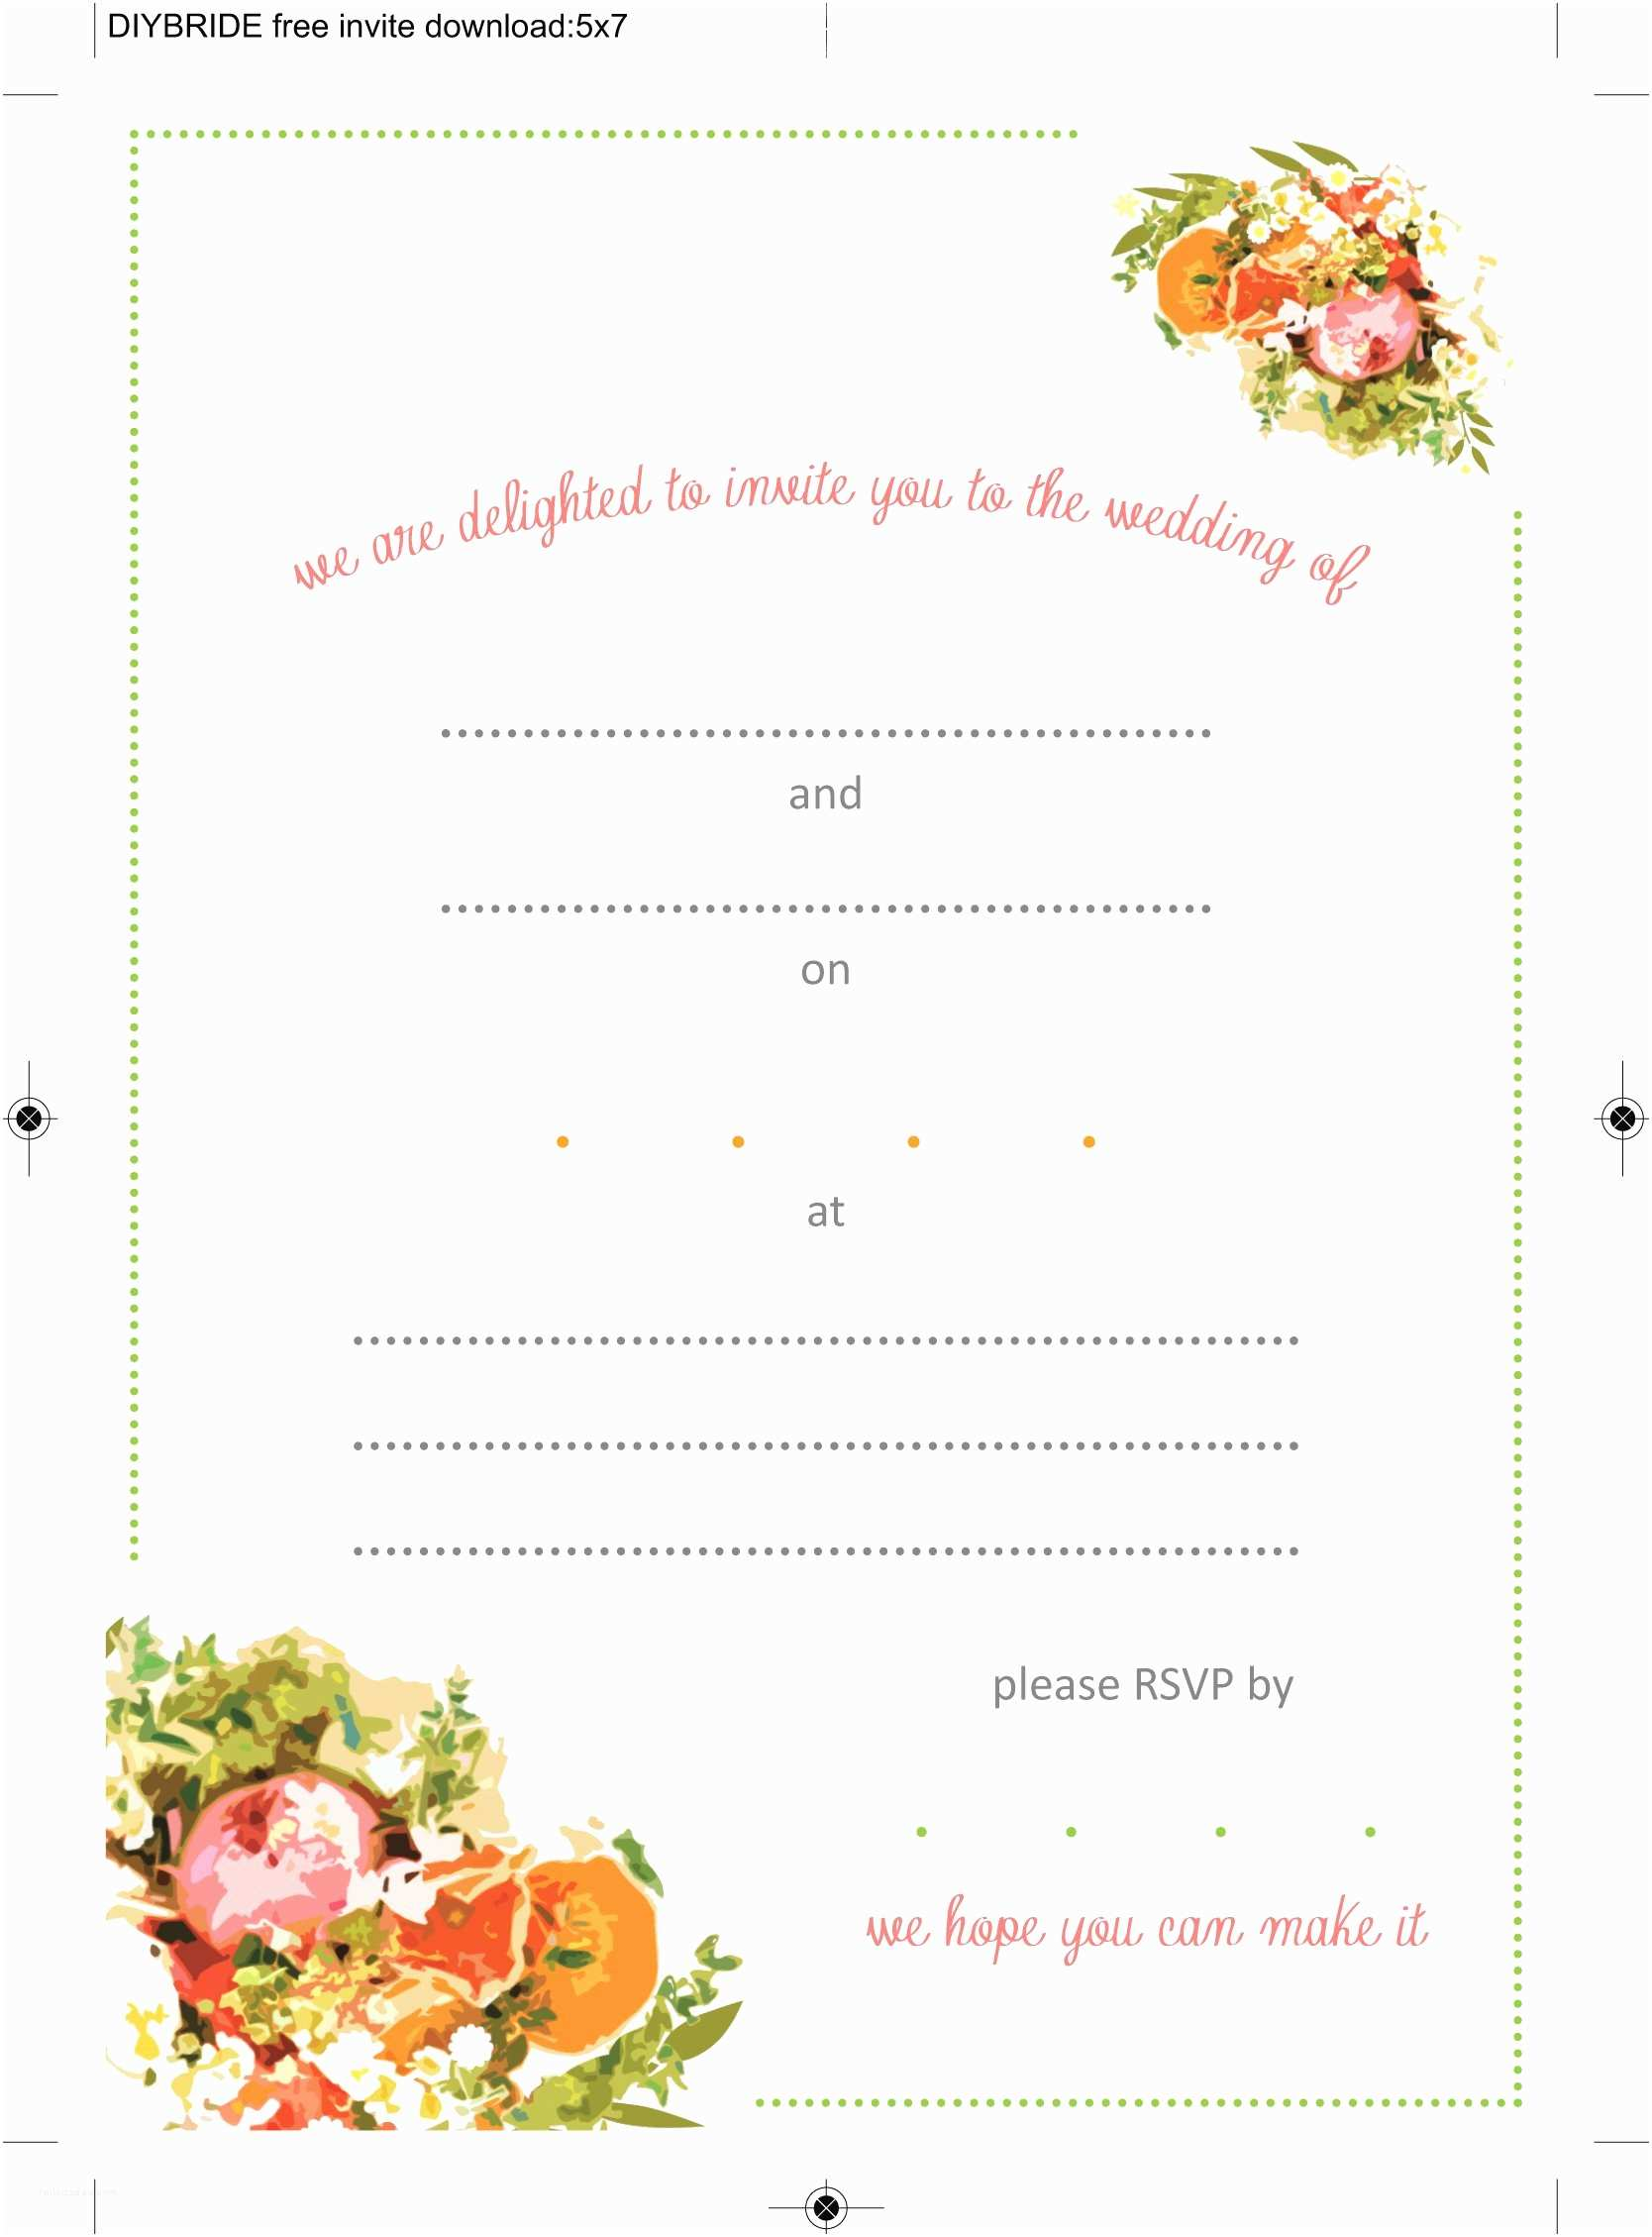 Wedding Invitation With Pho Templates Wedding Invitation Templates That Are Cute And Easy